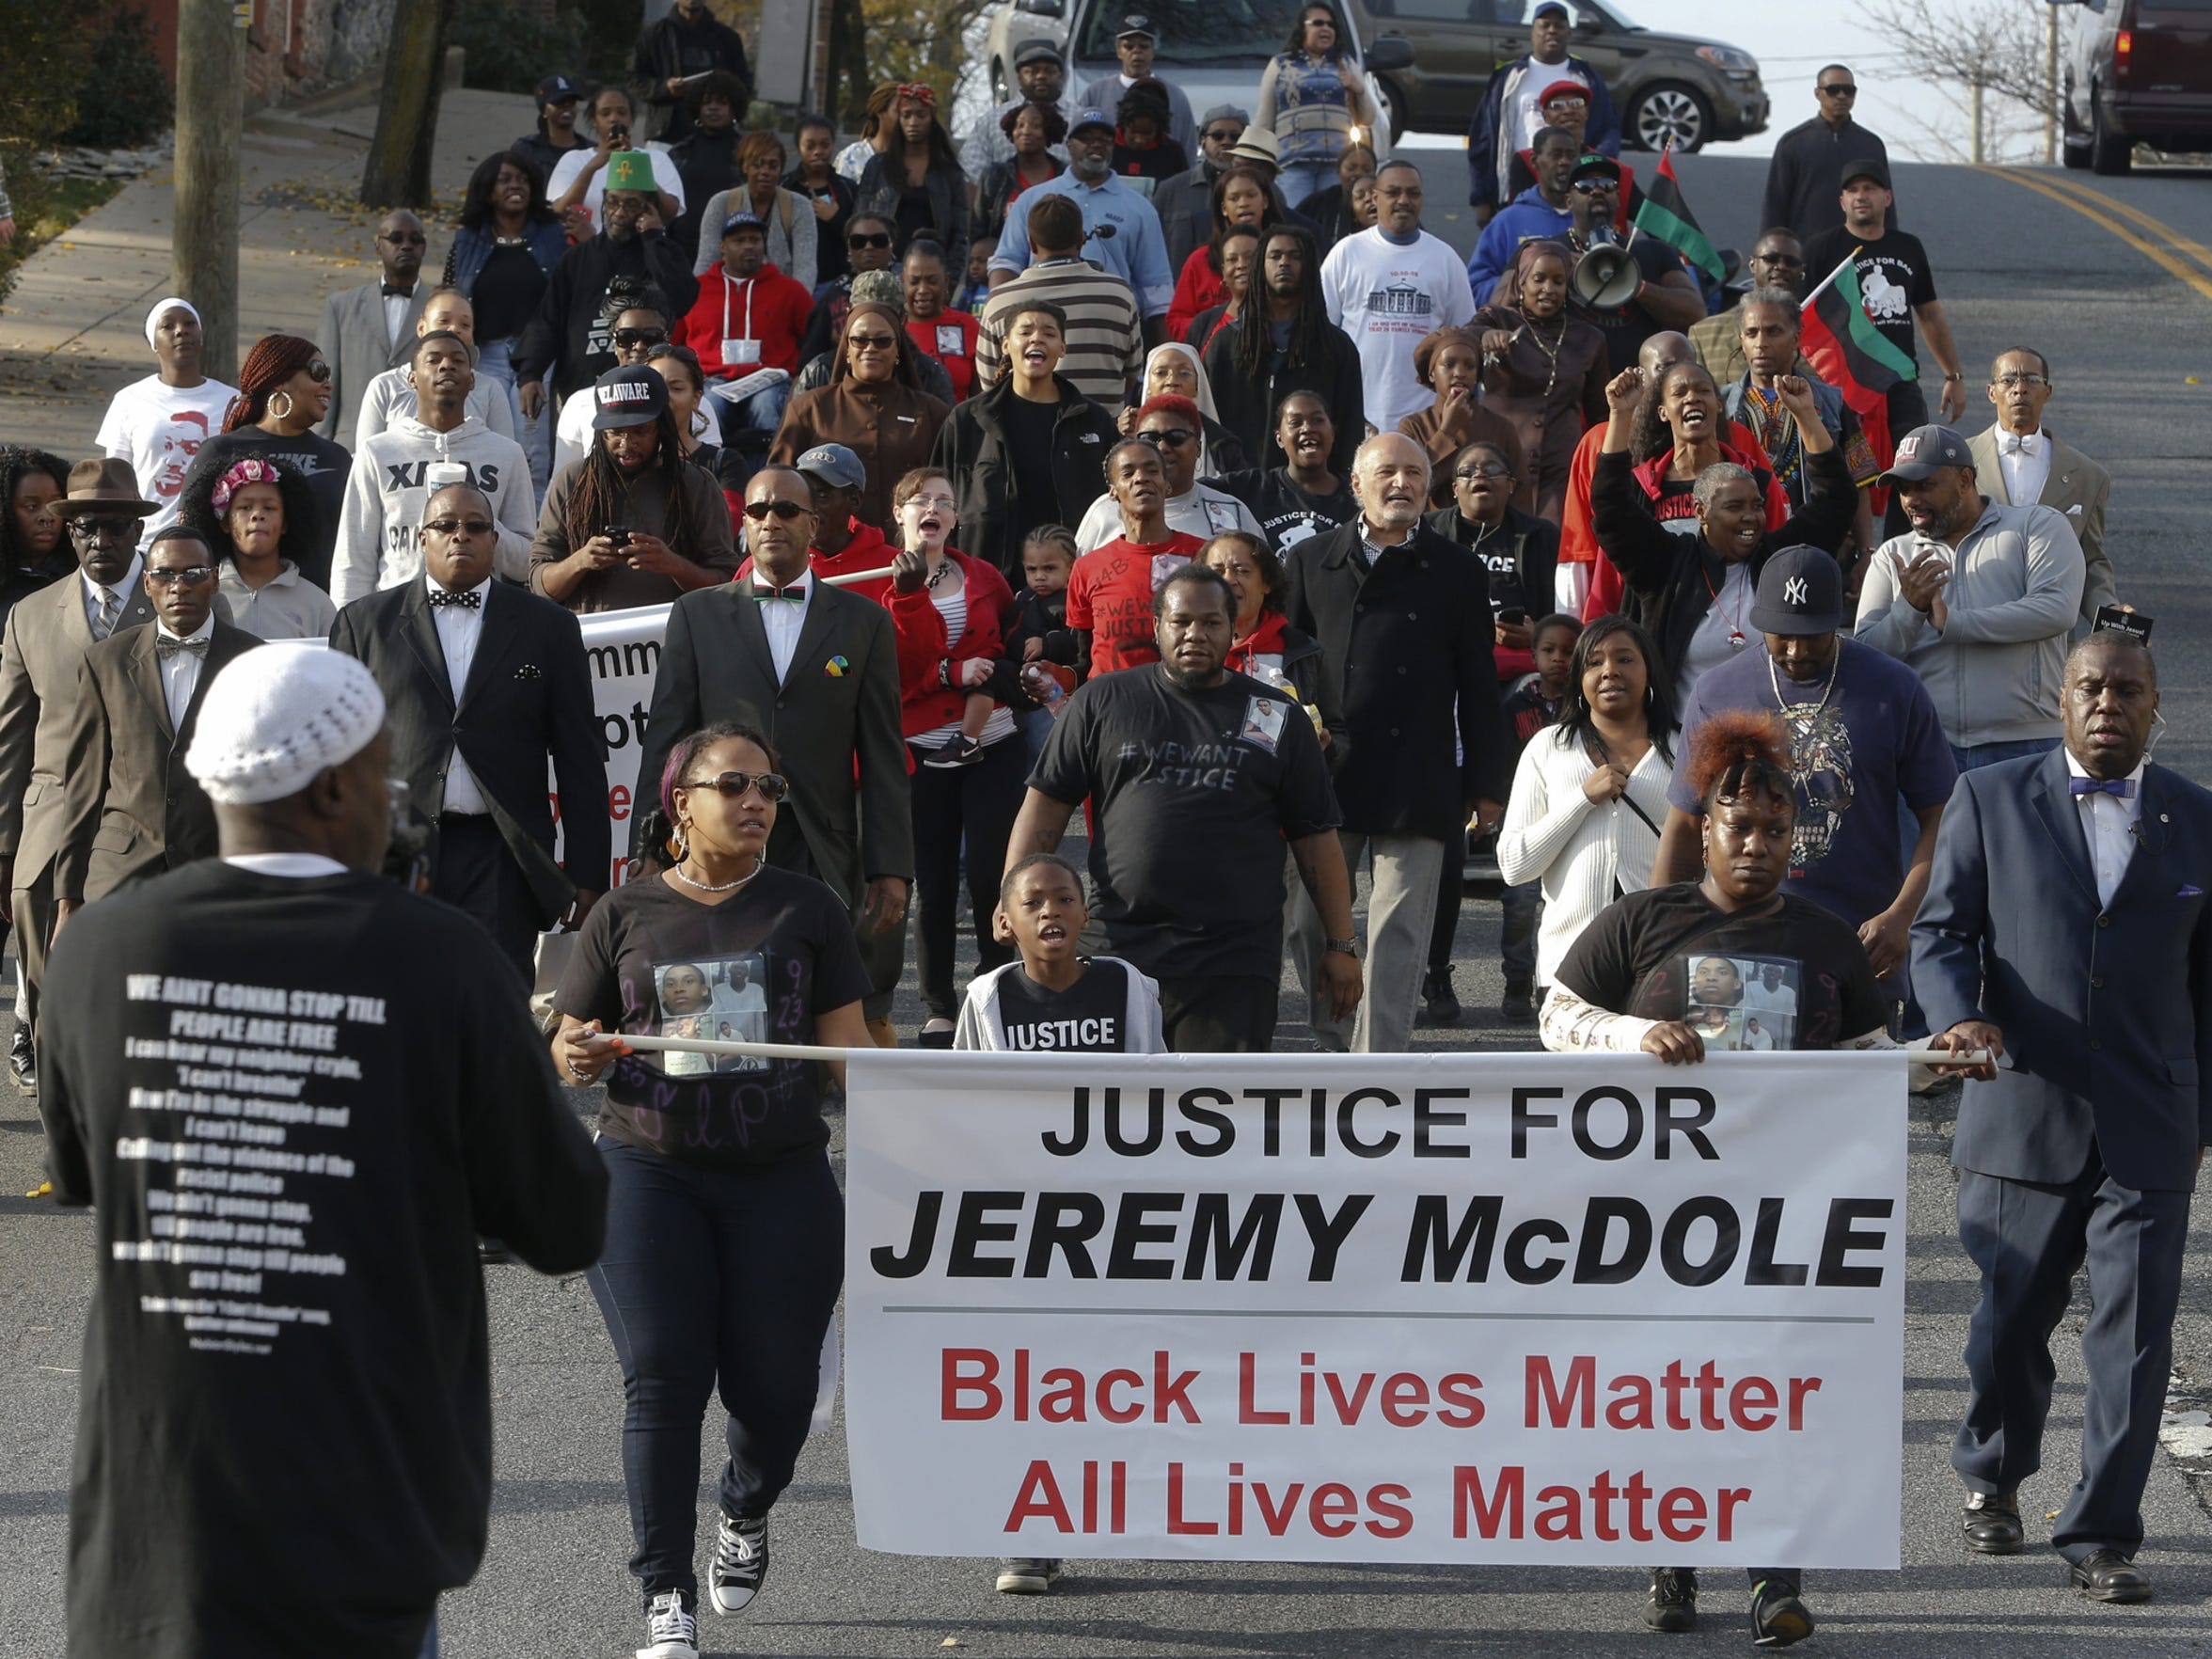 A march is held on Dec. 12, 2015, following the shooting death of Jeremy McDole by Wilmington police.